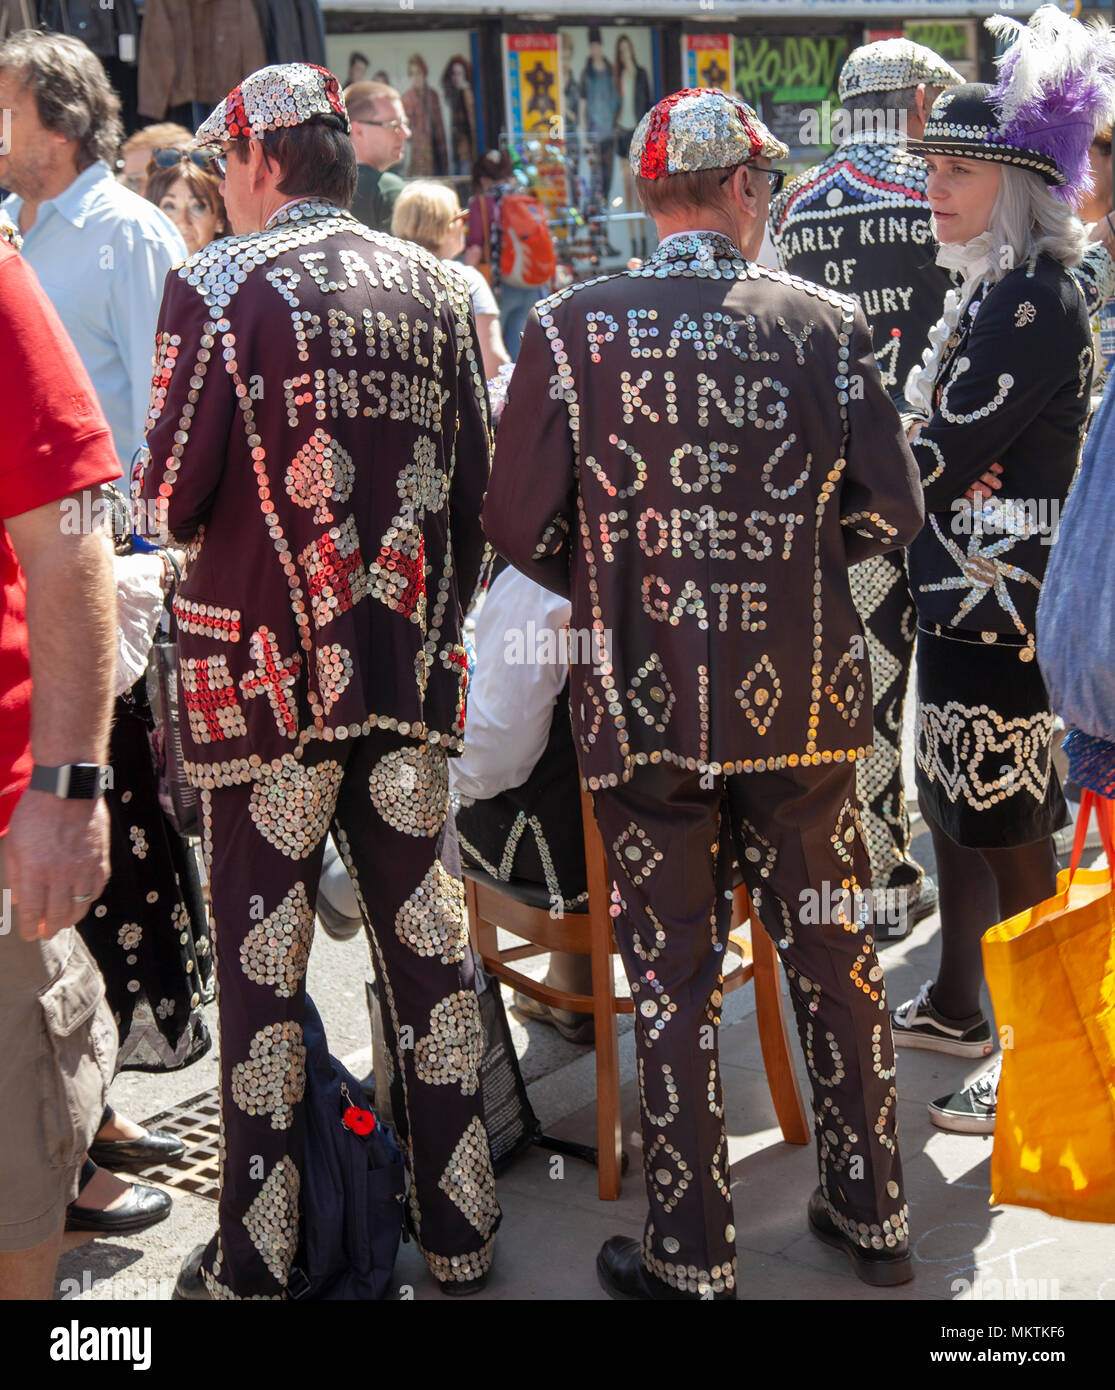 Pearly Kings and Queens Raise Money on Brick Lane in Shoreditch, London UK - Stock Image